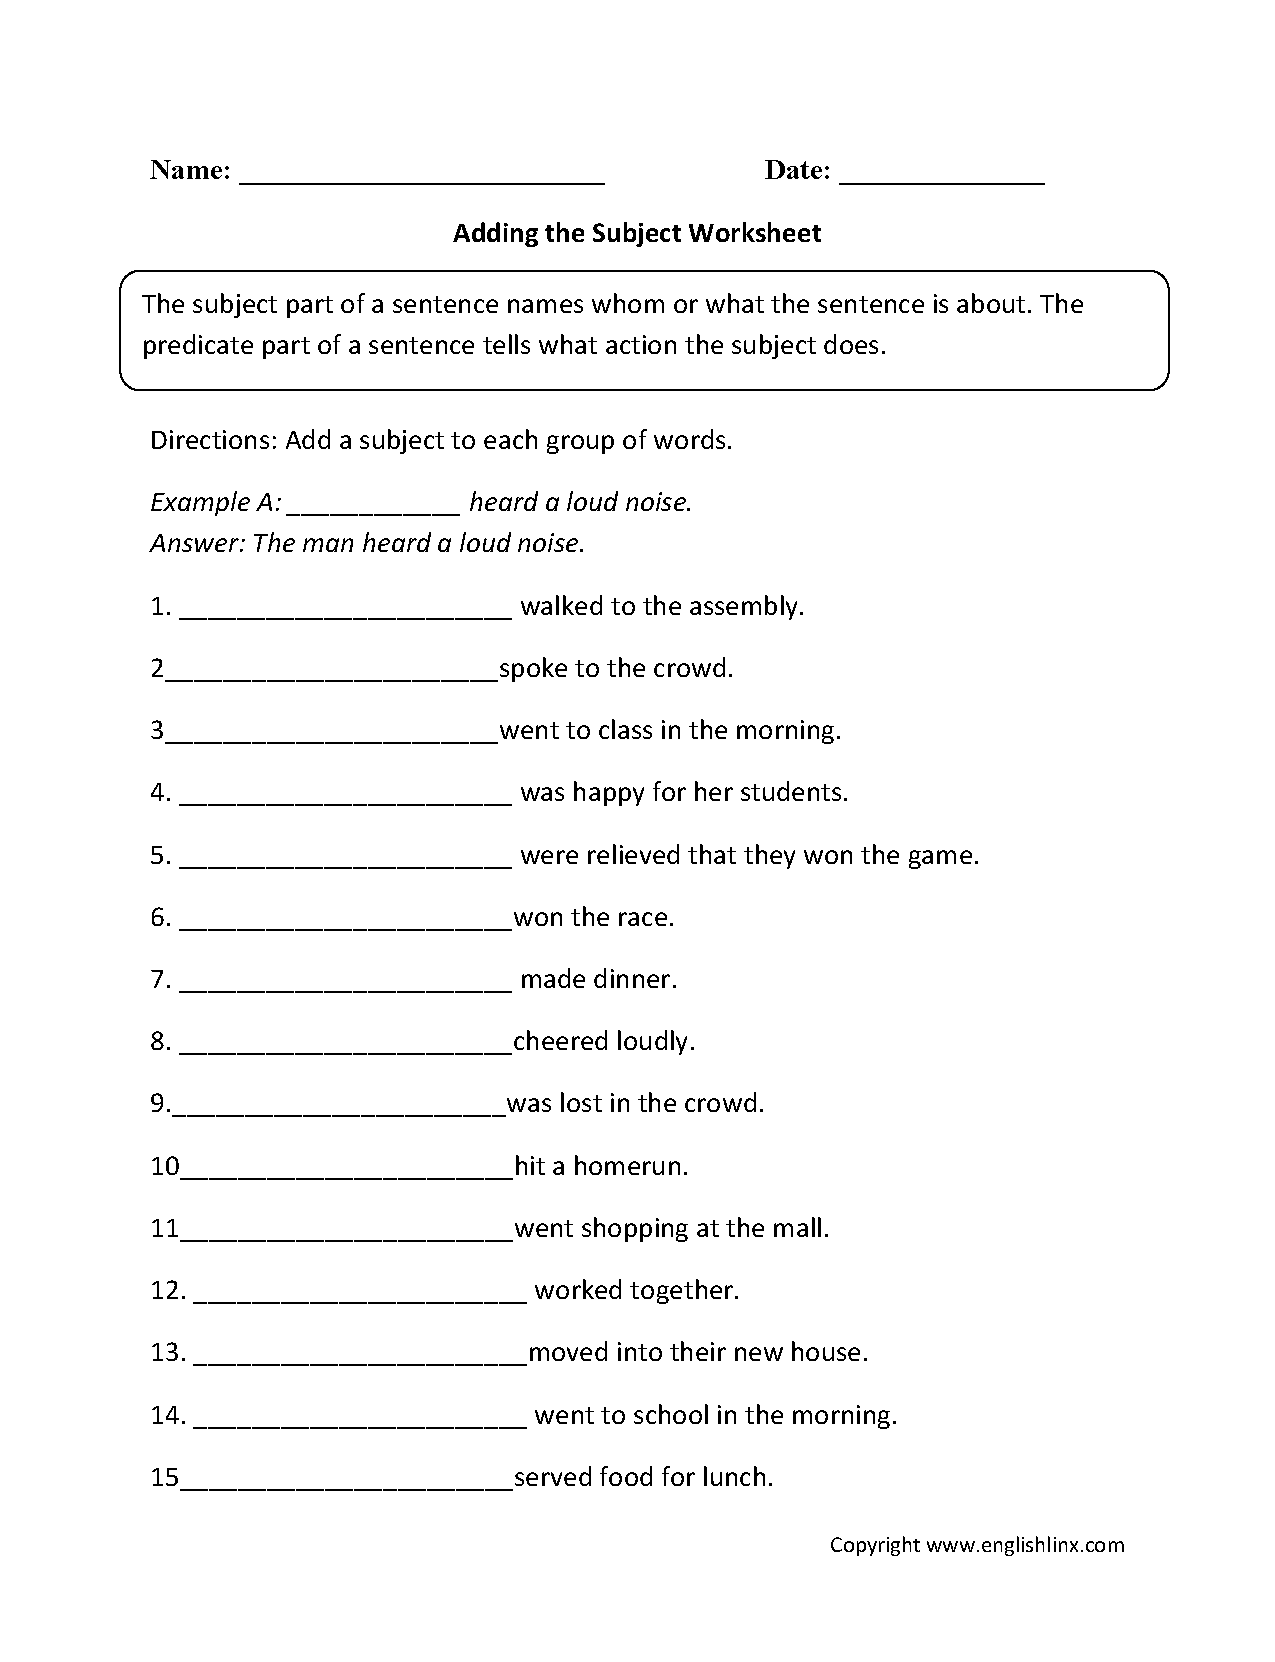 Adding a Subject Worksheet Englishlinx Board – Grammar Worksheets 6th Grade